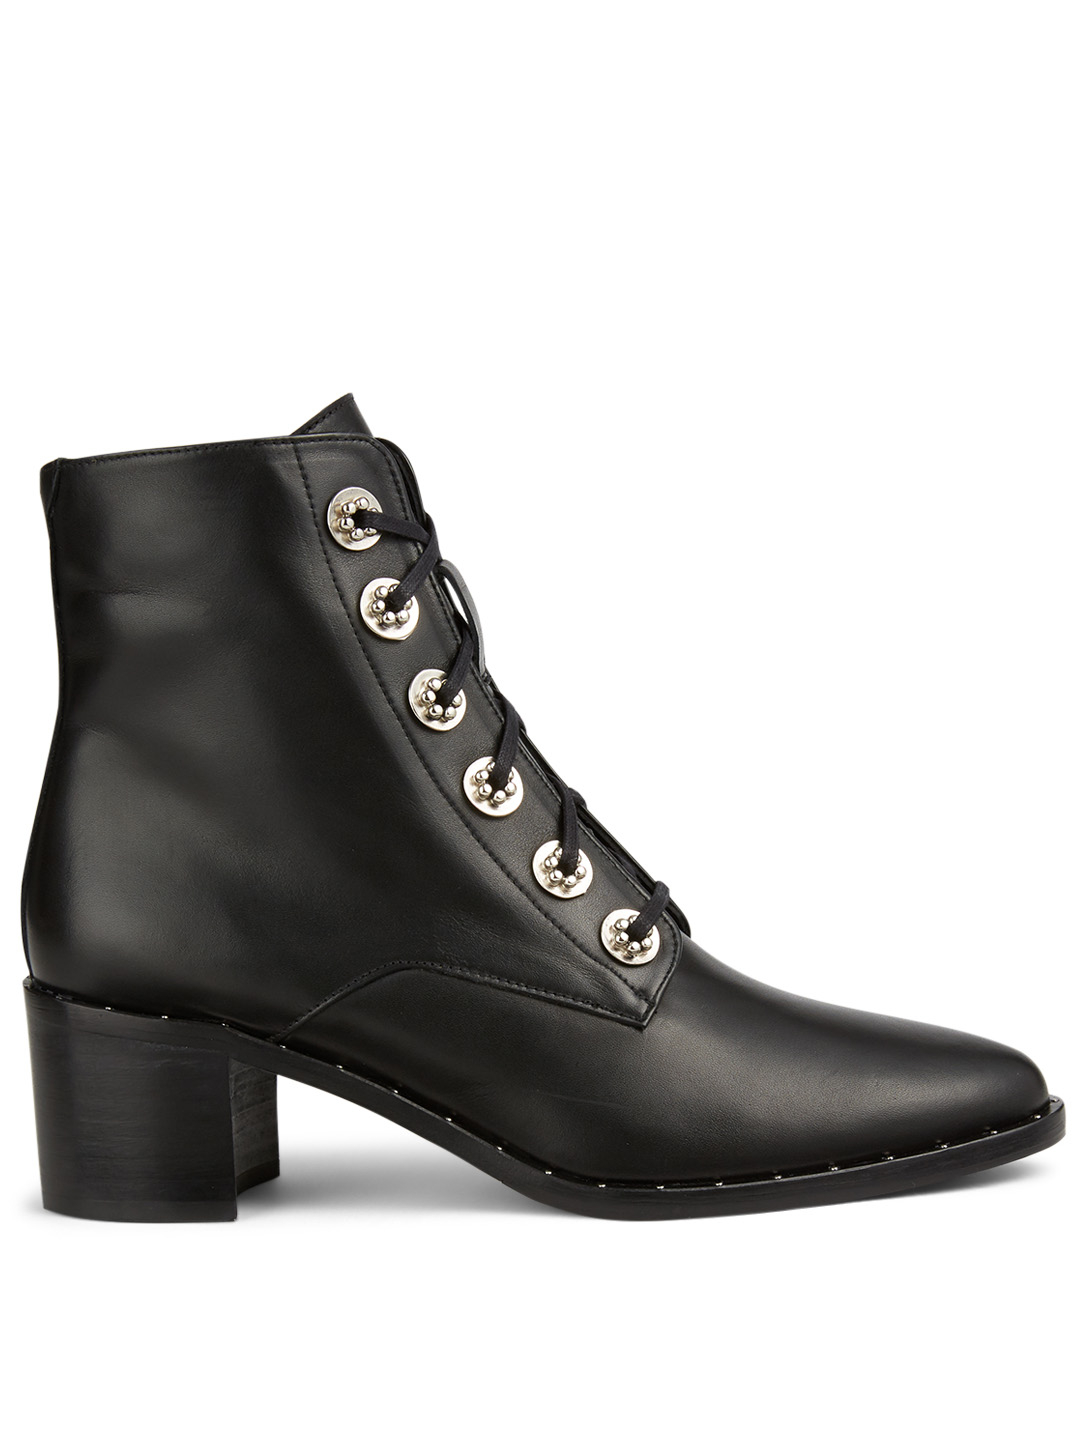 FREDA SALVADOR Ace Leather Ankle Boots Women's Black